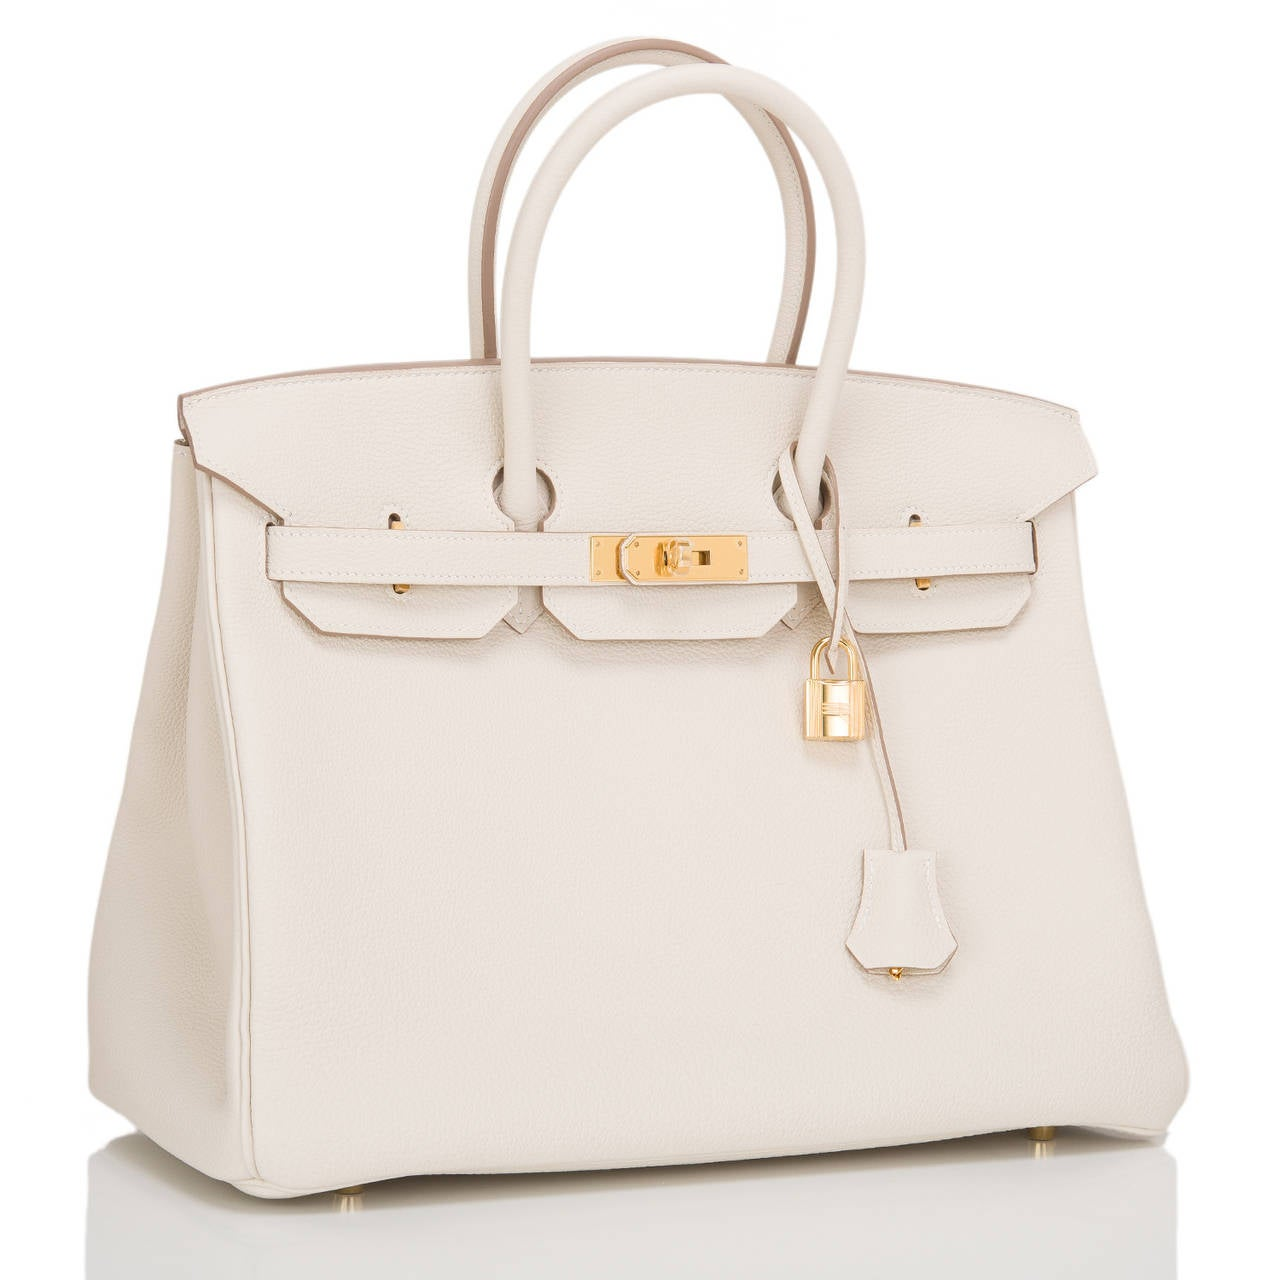 This Hermes Craie 35cm in togo leather with gold hardware.  This Birkin features tonal stitching, front toggle closure, clochette with lock and two keys, and double rolled handles. The interior is lined in Craie chevre with one zip pocket with an